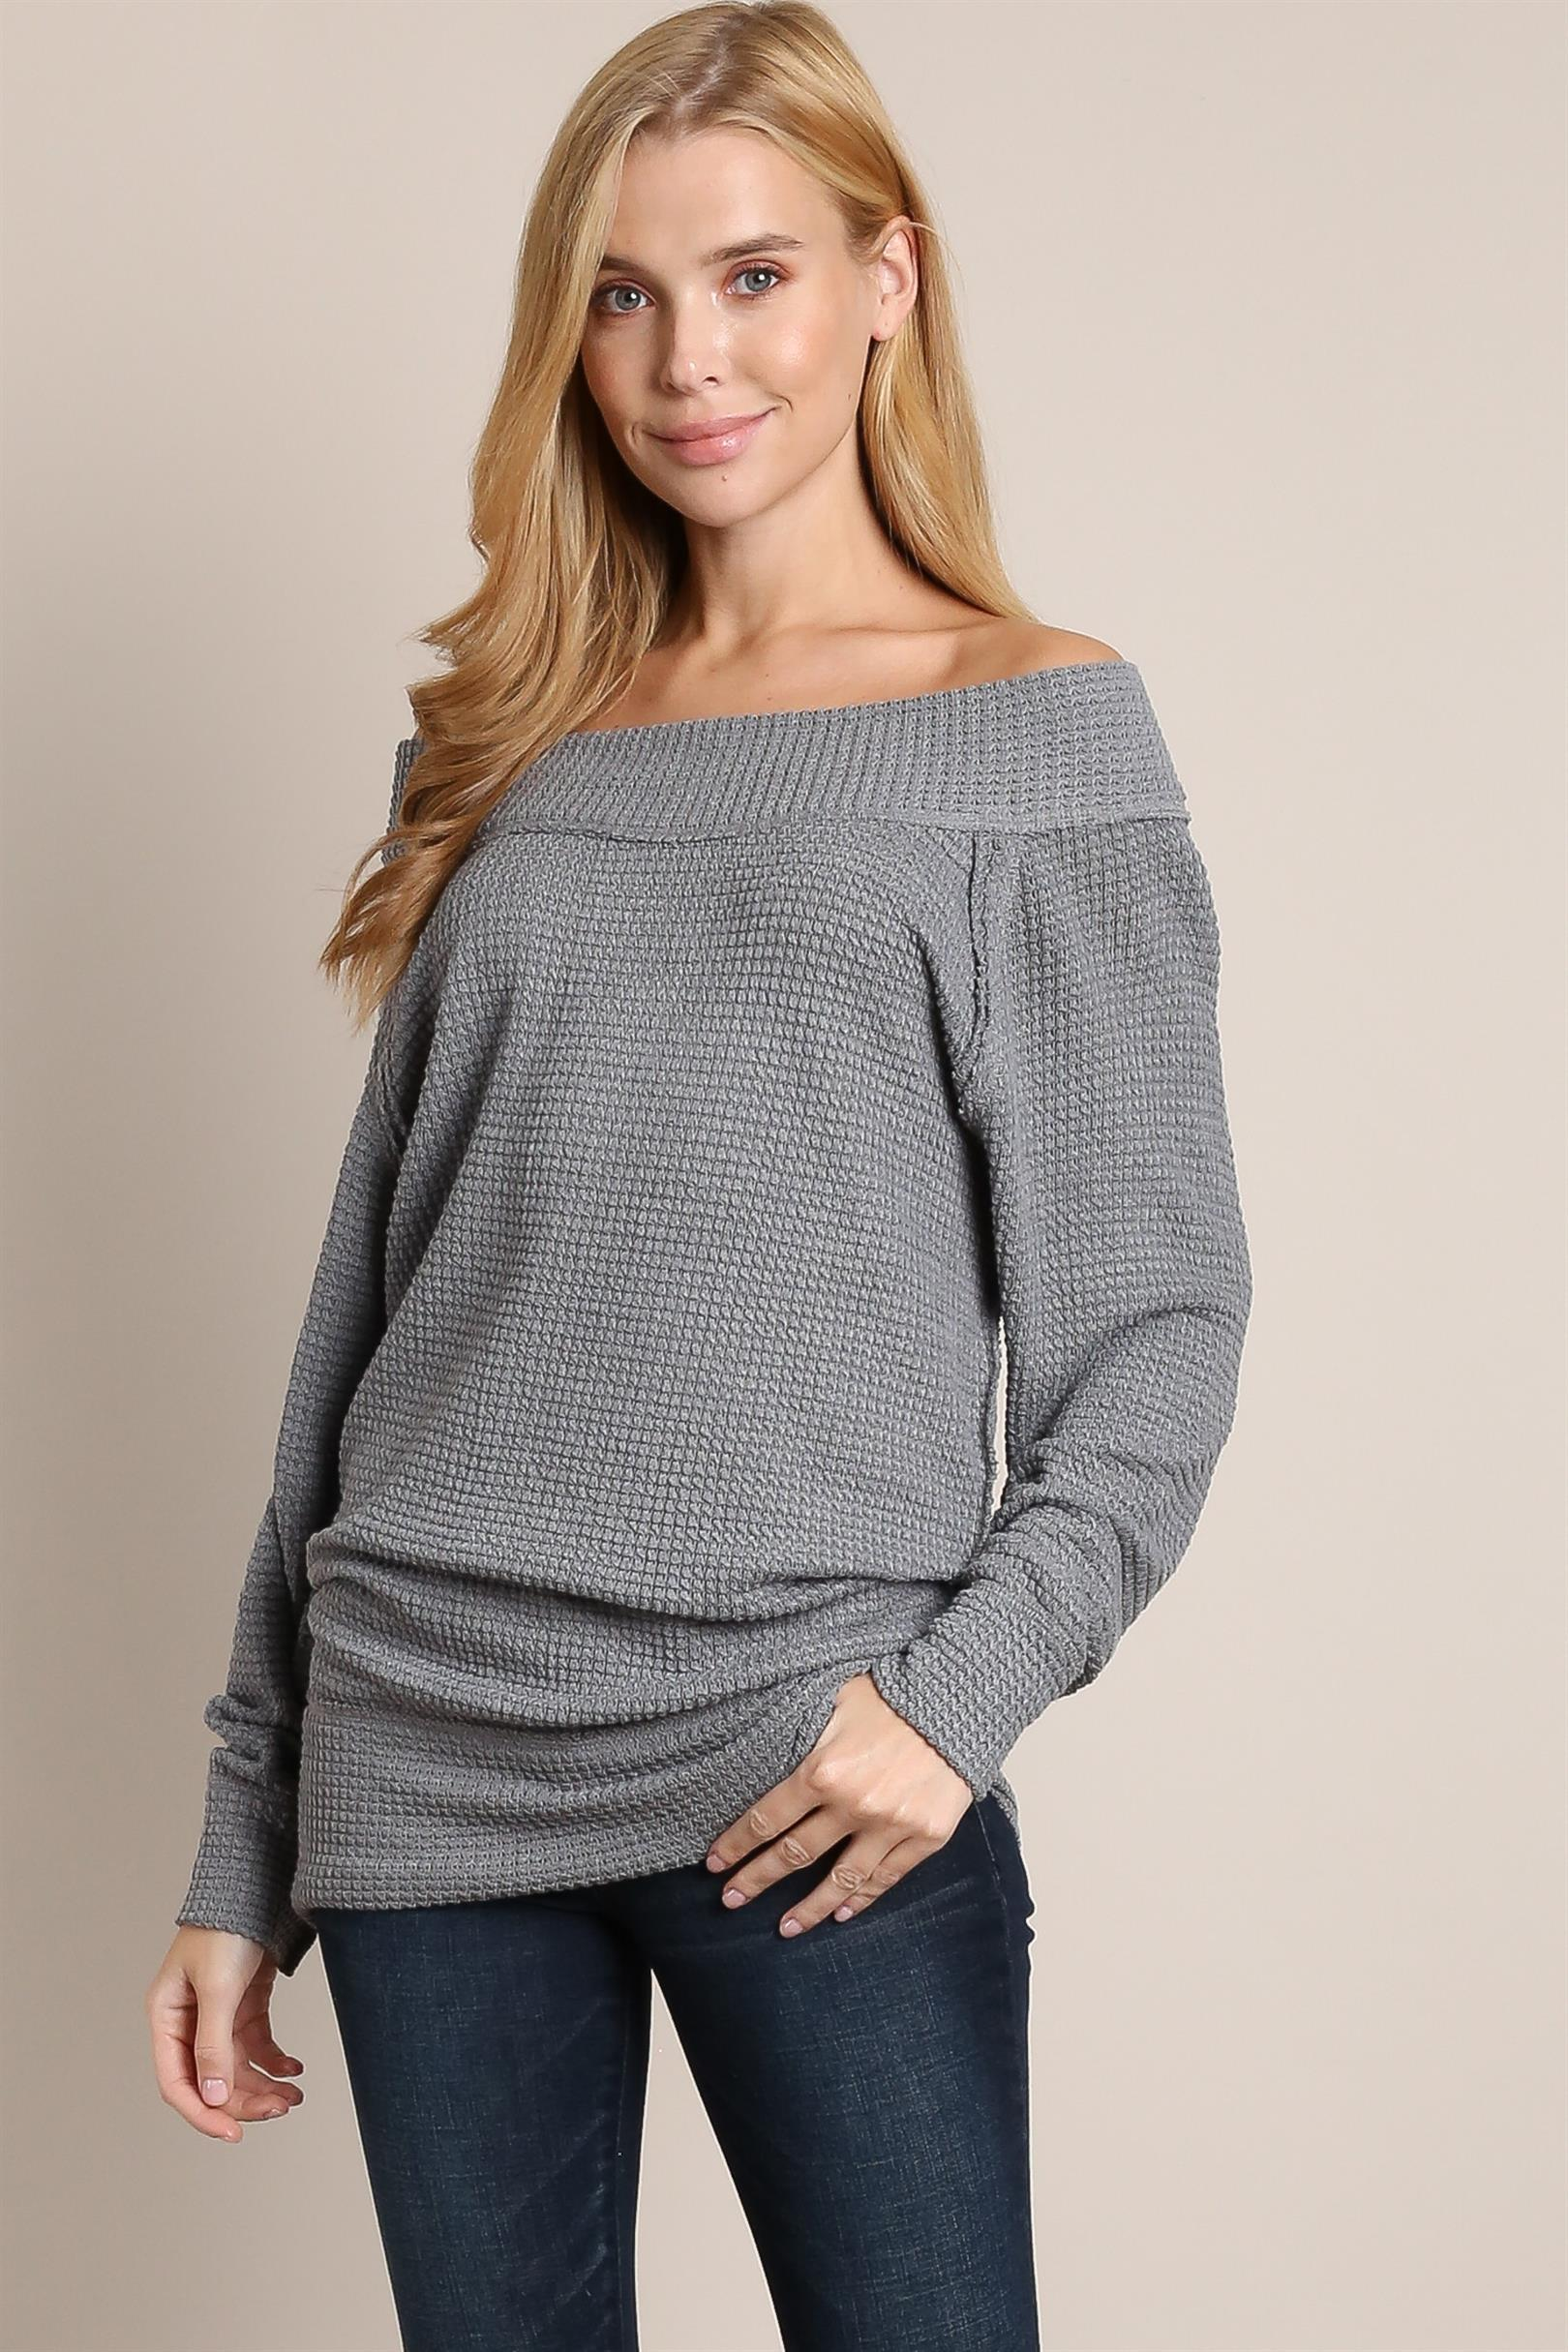 Relax Fit On or Off The Shoulder Knit Top